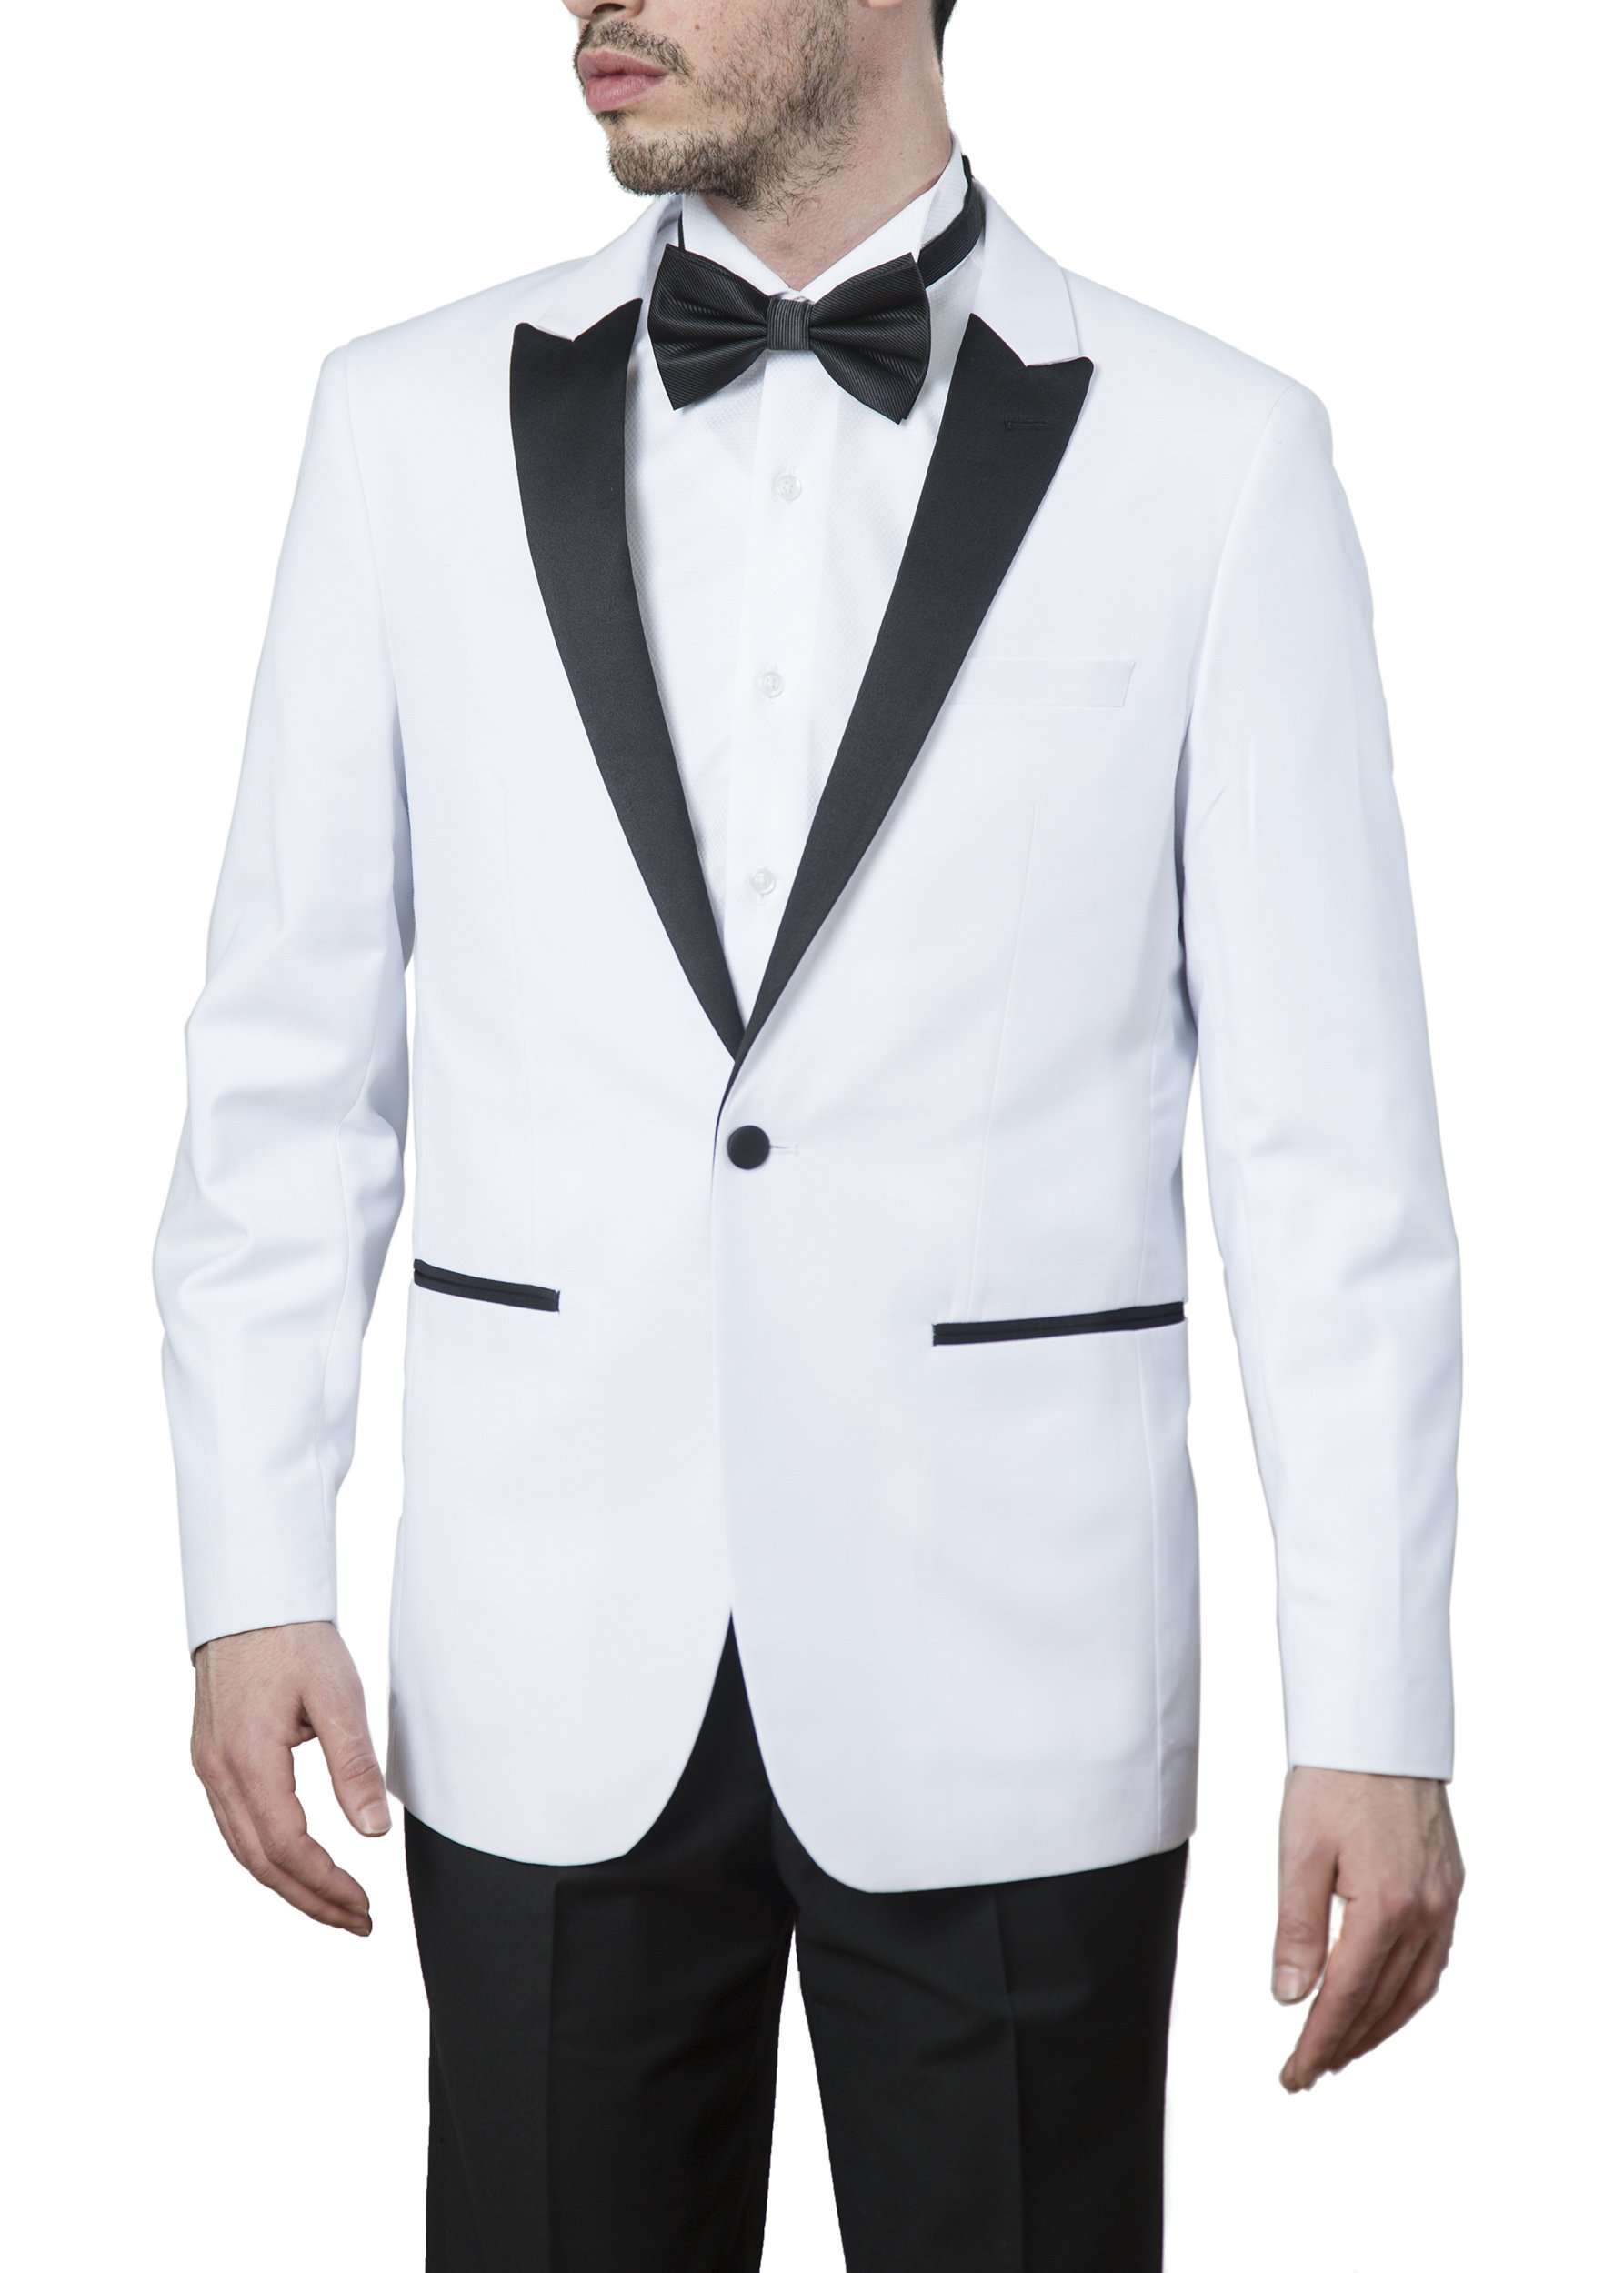 761ede9c6b8 Giorgio Fiorelli Men's Modern Fit Two-Piece Tuxedo Suit Set - Colors  product image